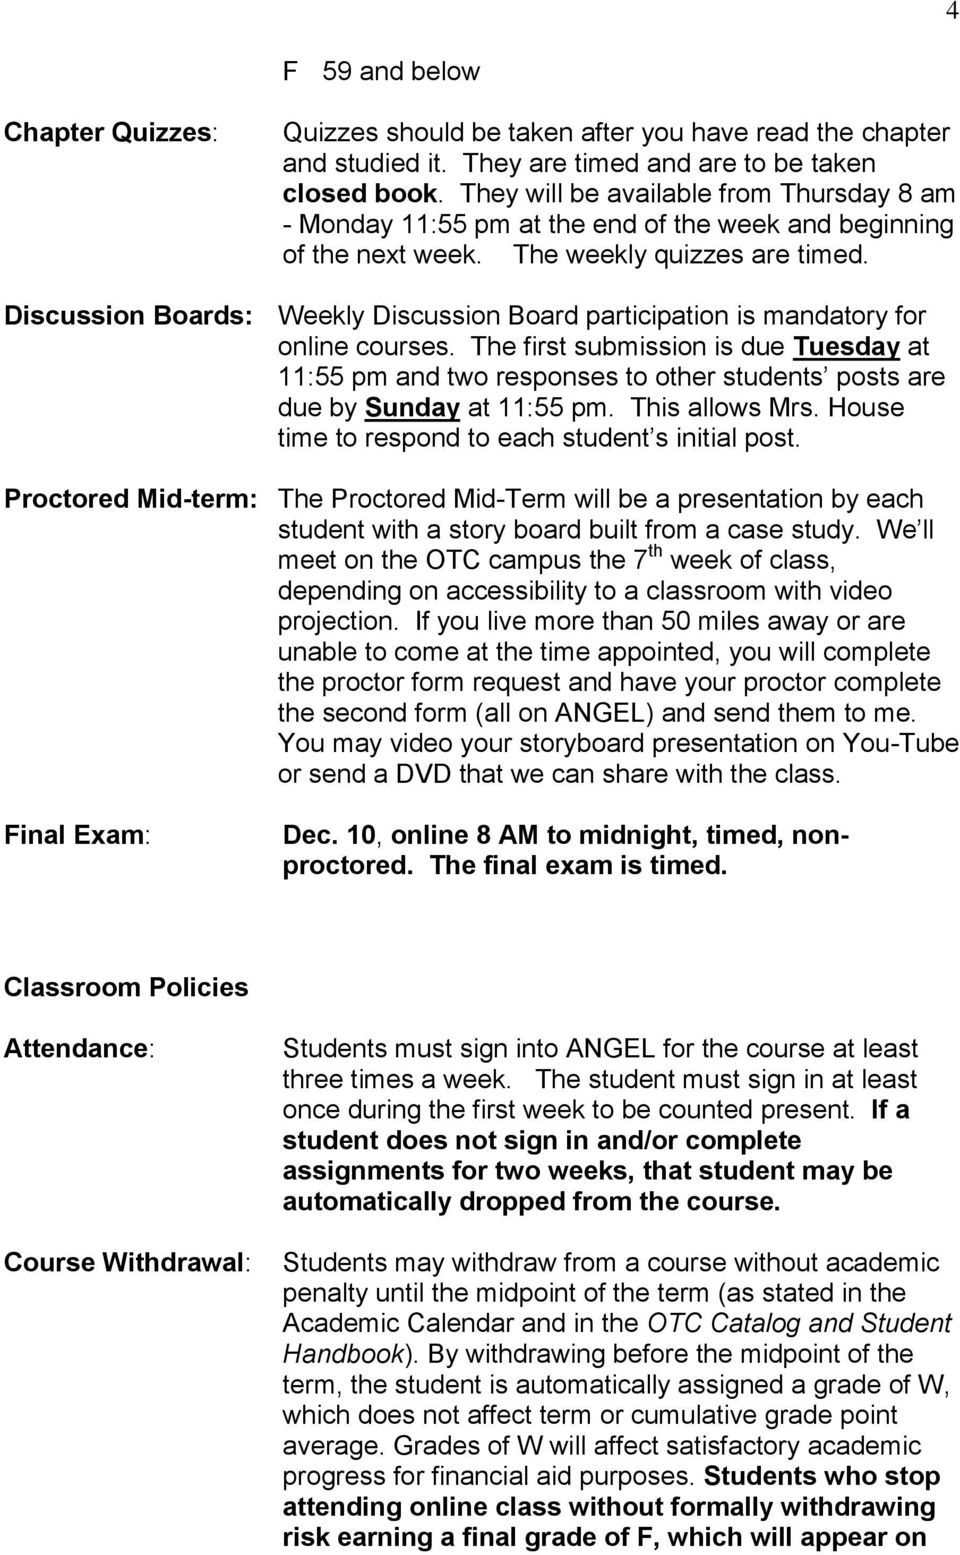 s: Weekly participation is mandatory for online courses. The first submission is due Tuesday at 11:55 pm and two responses to other students posts are due by Sunday at 11:55 pm. This allows Mrs.